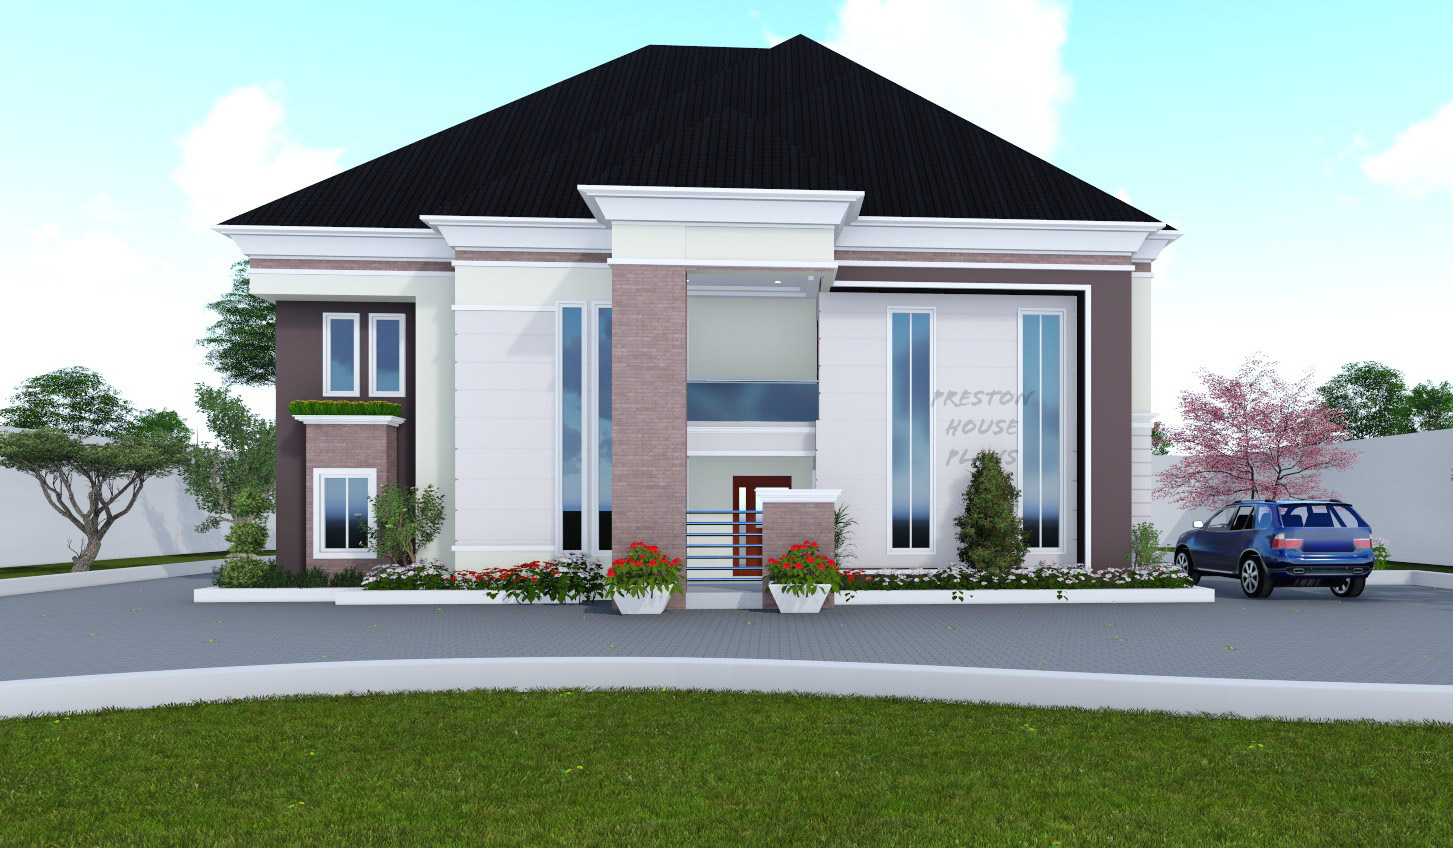 Five bedroom duplex front view